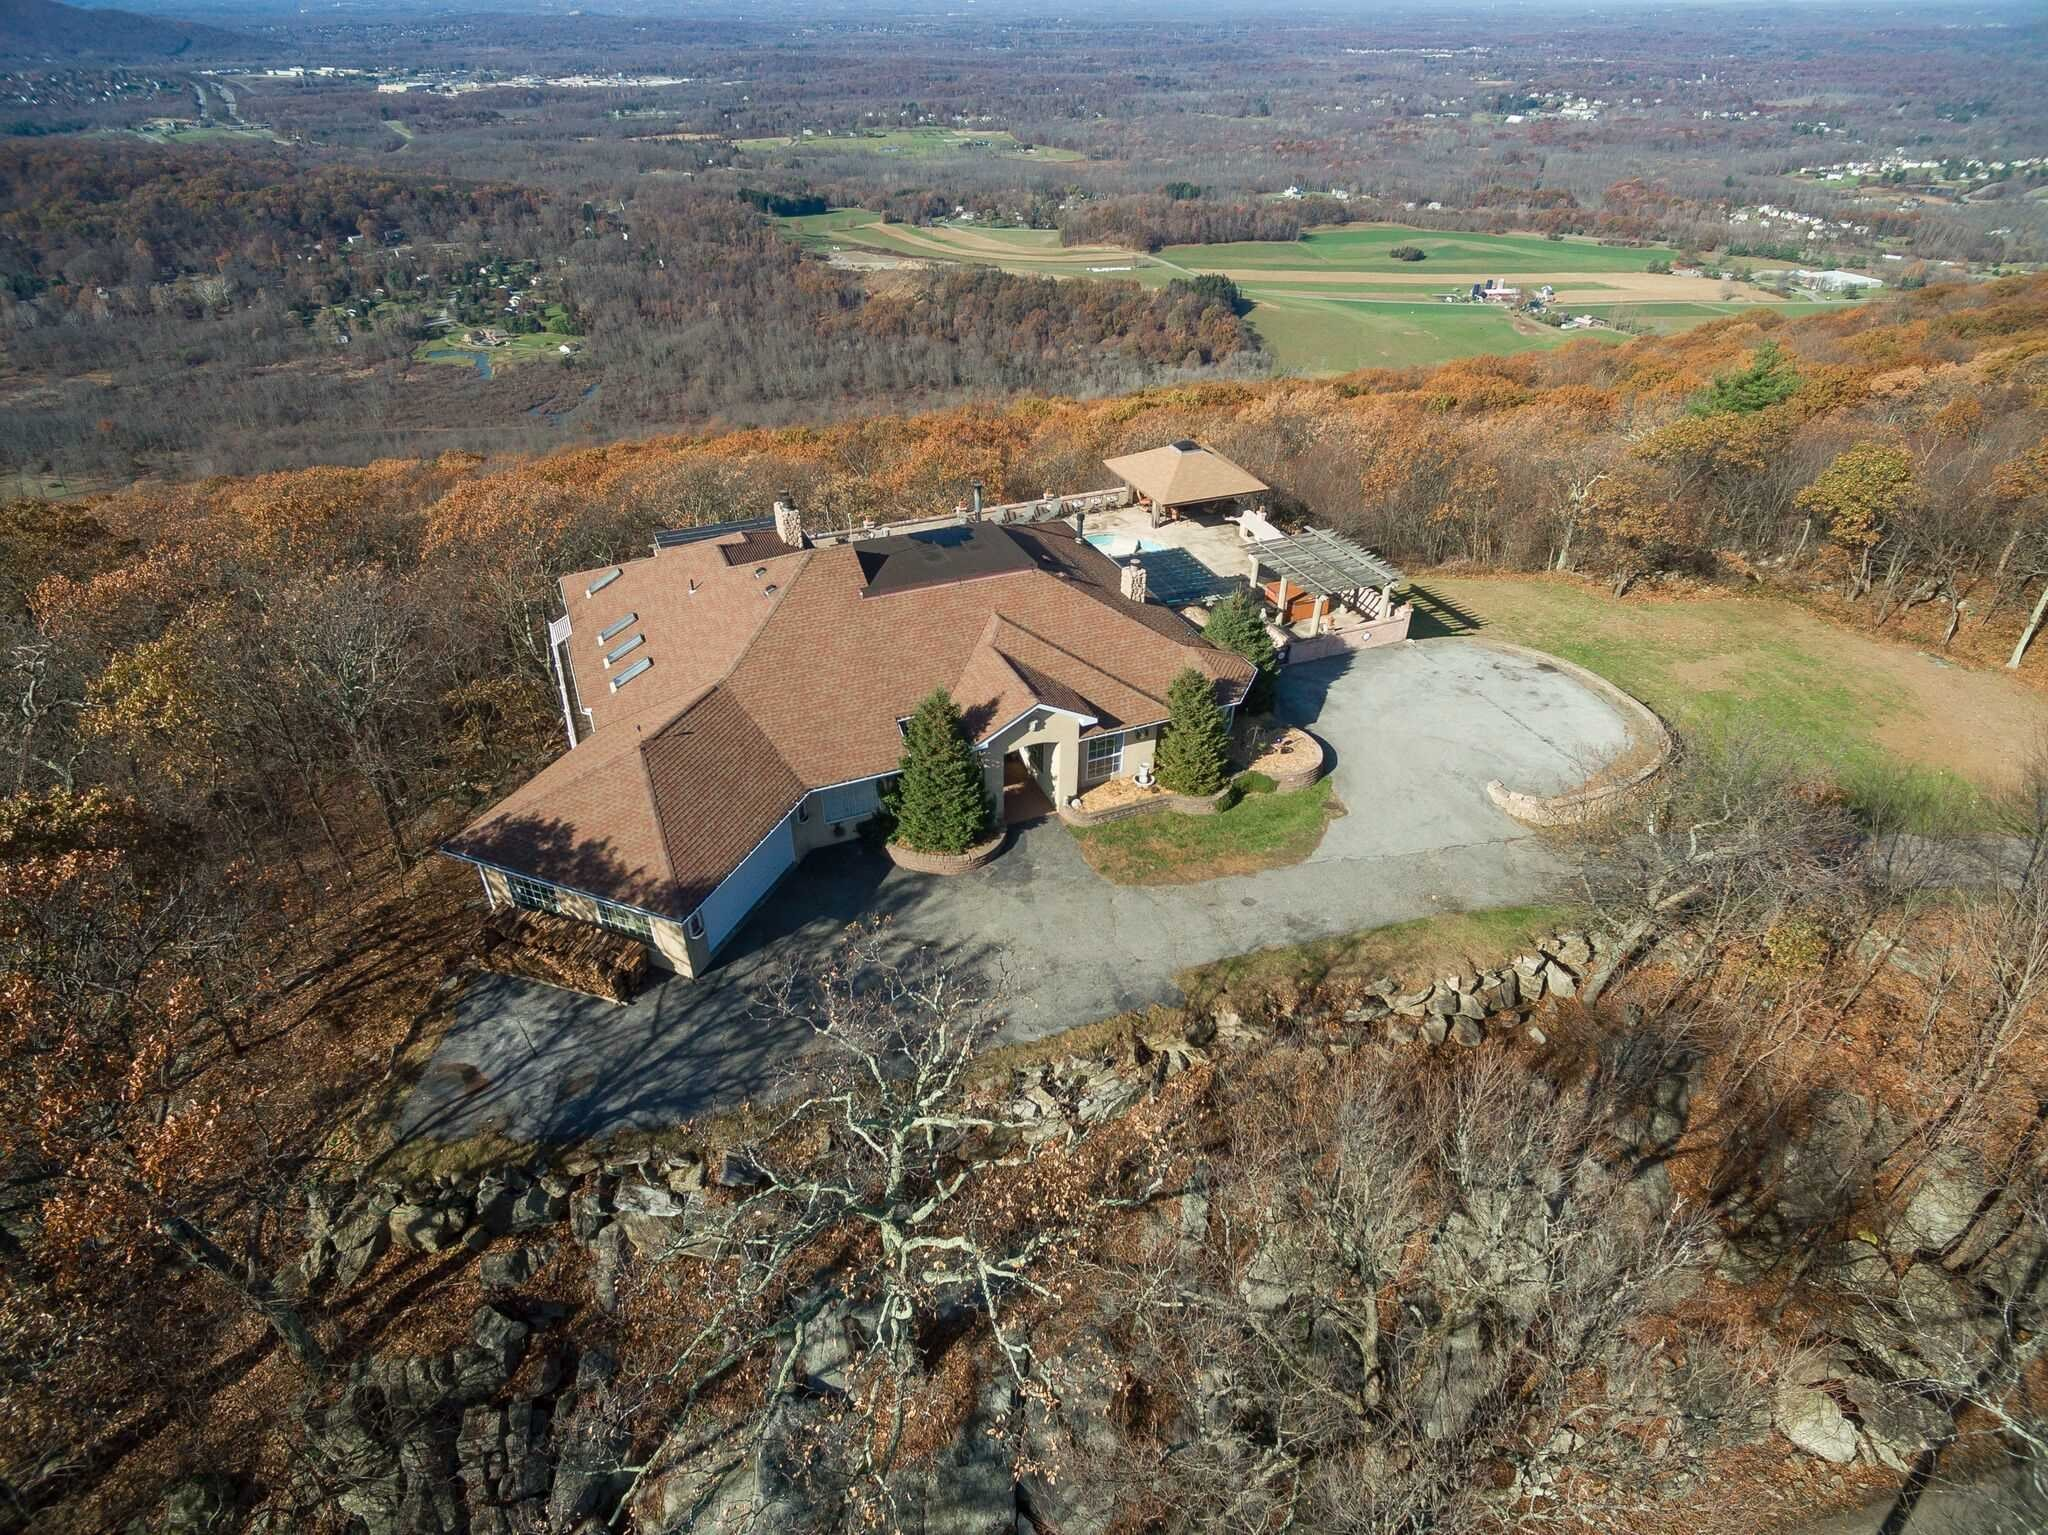 Single Family Home for Sale at 295 WOODMONT Road 295 WOODMONT Road East Fishkill, New York 12533 United States